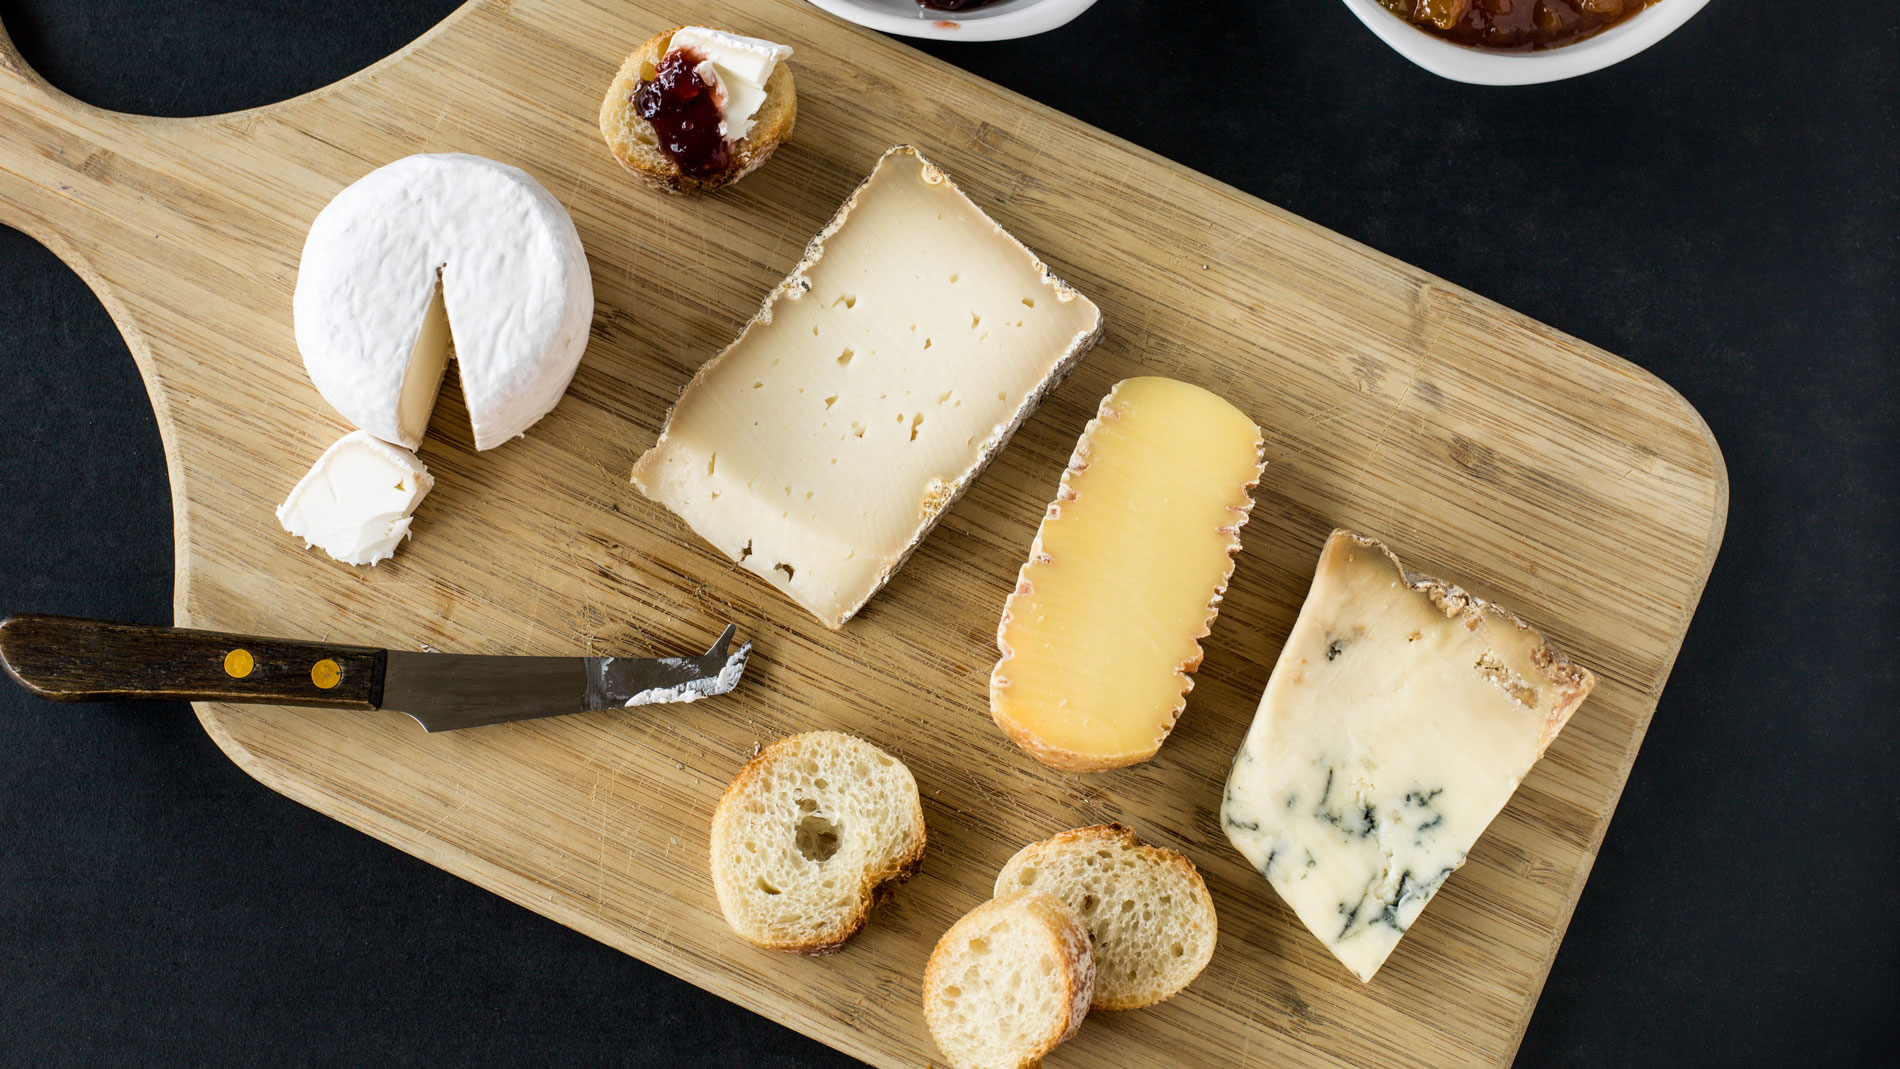 5 Things That Separate A Good Cheese Board From A Bad One